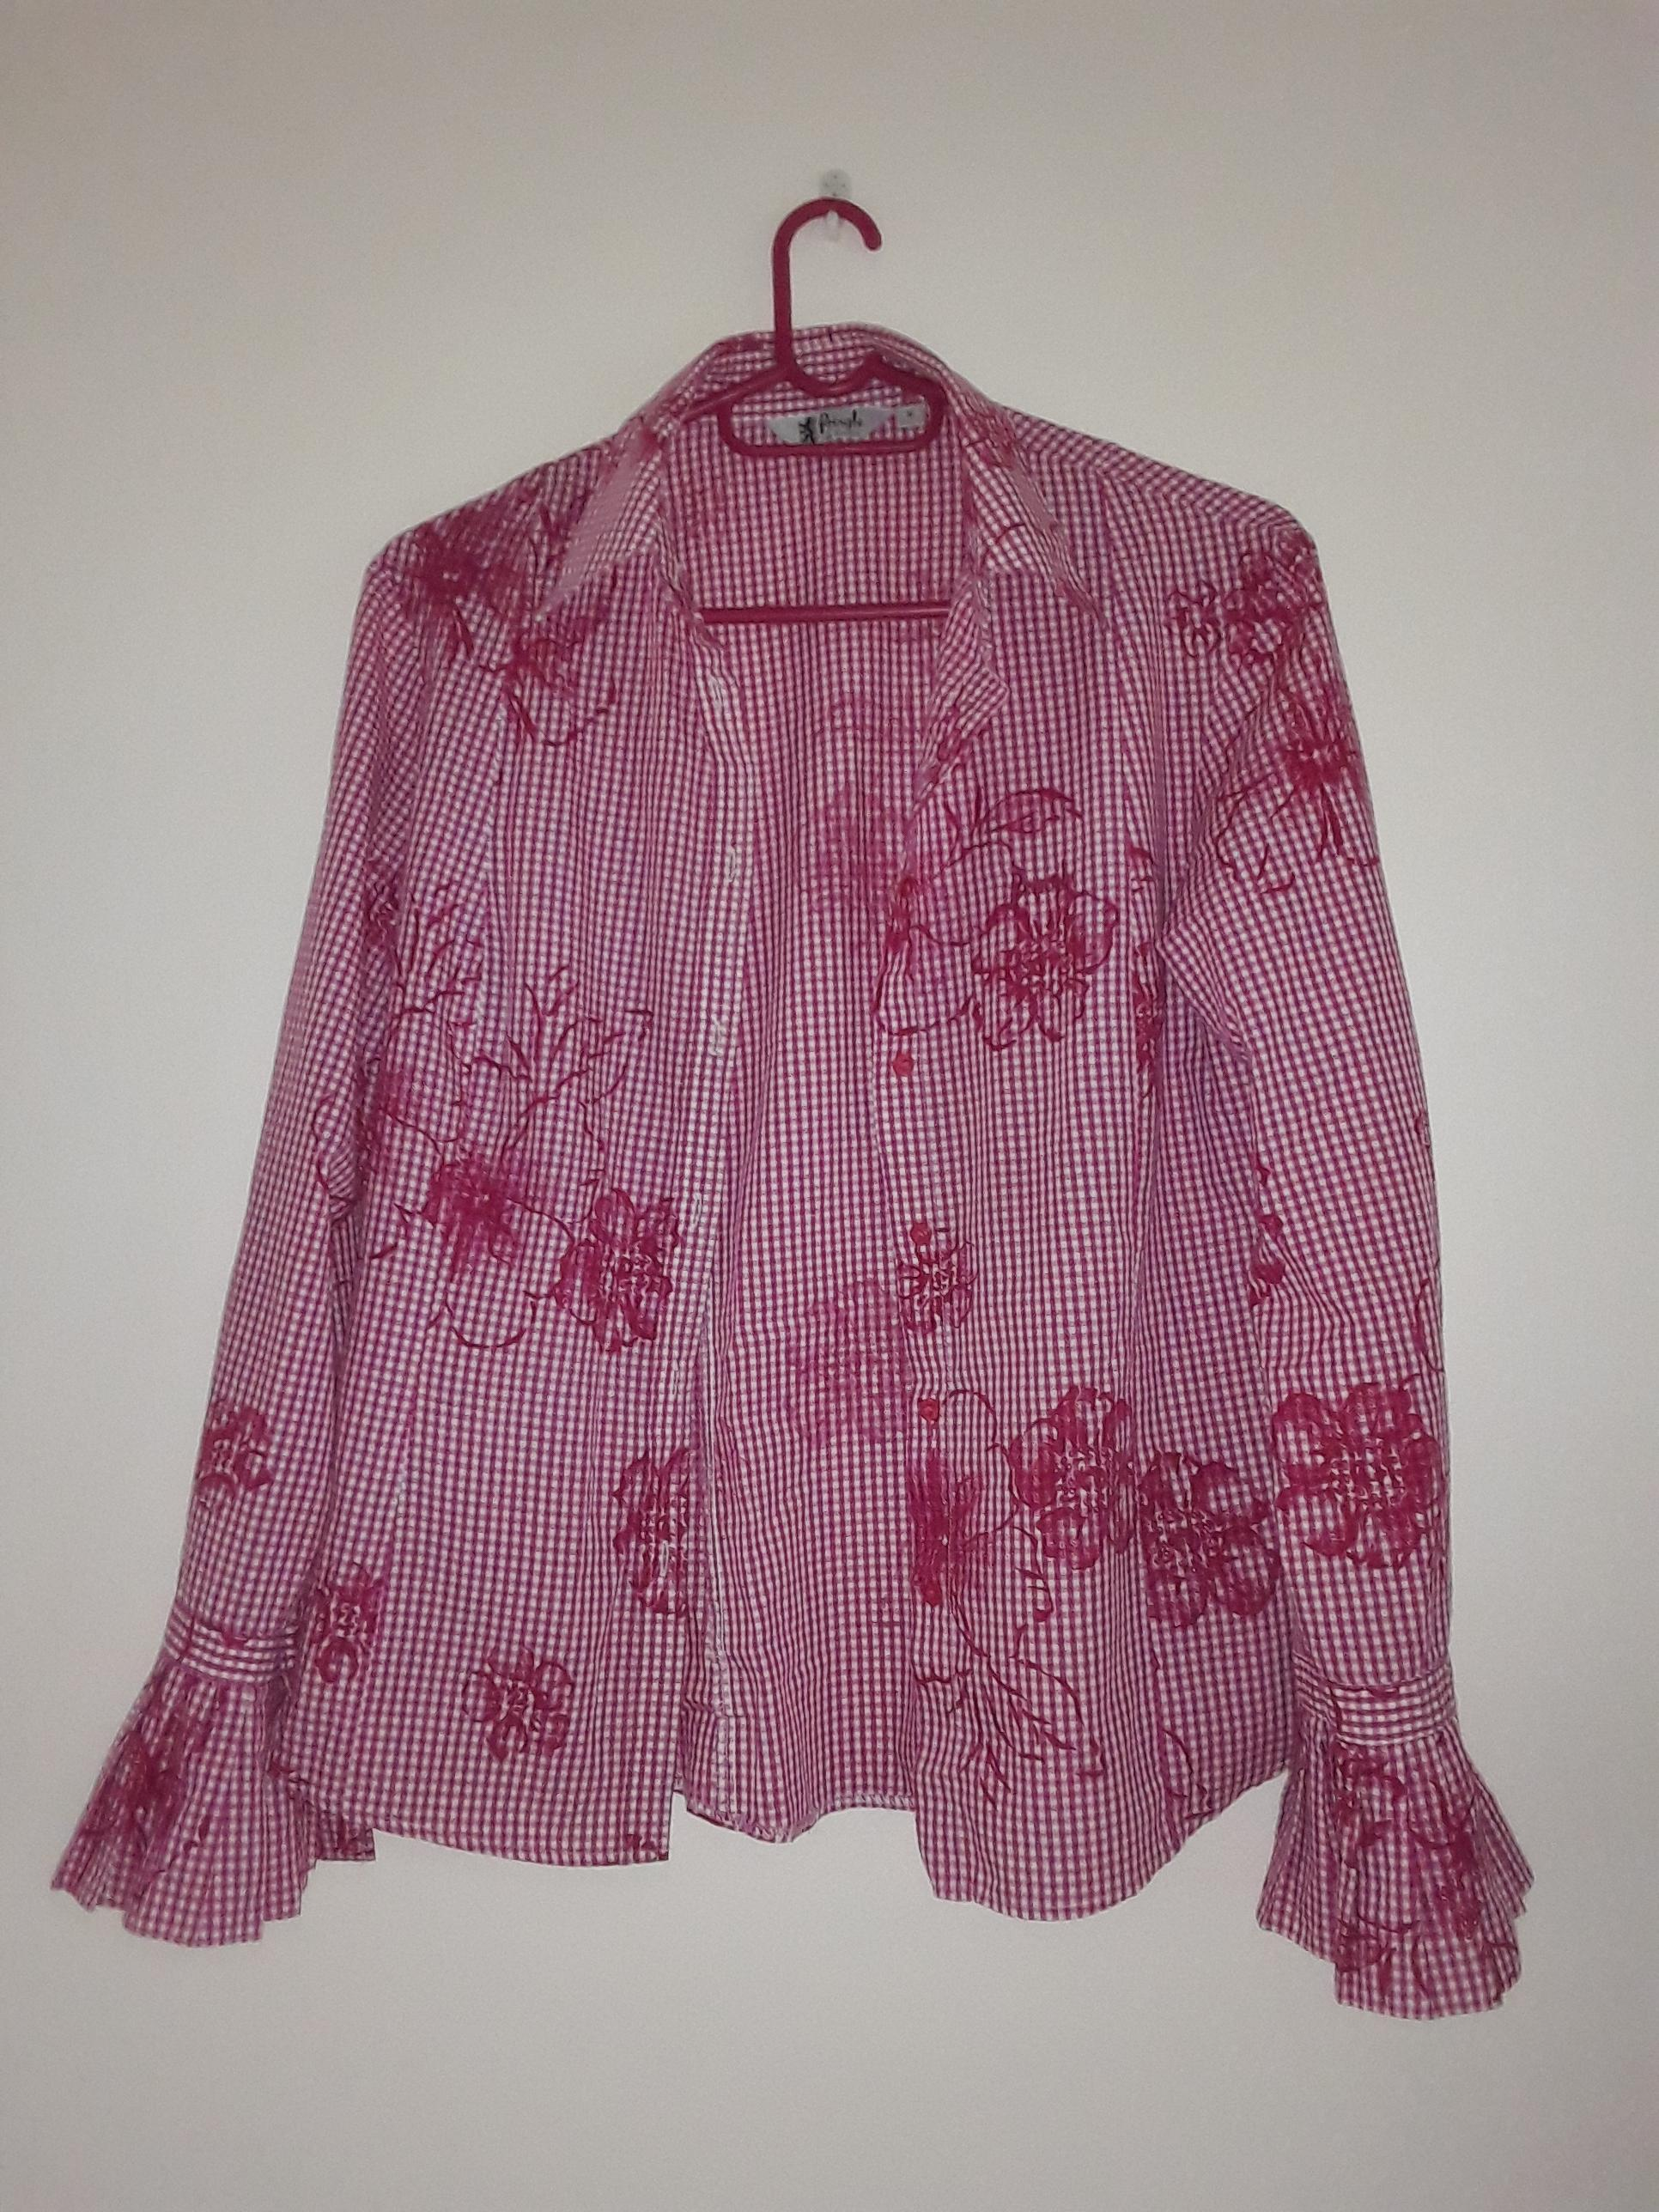 Pringle Maroon Floral Shirt